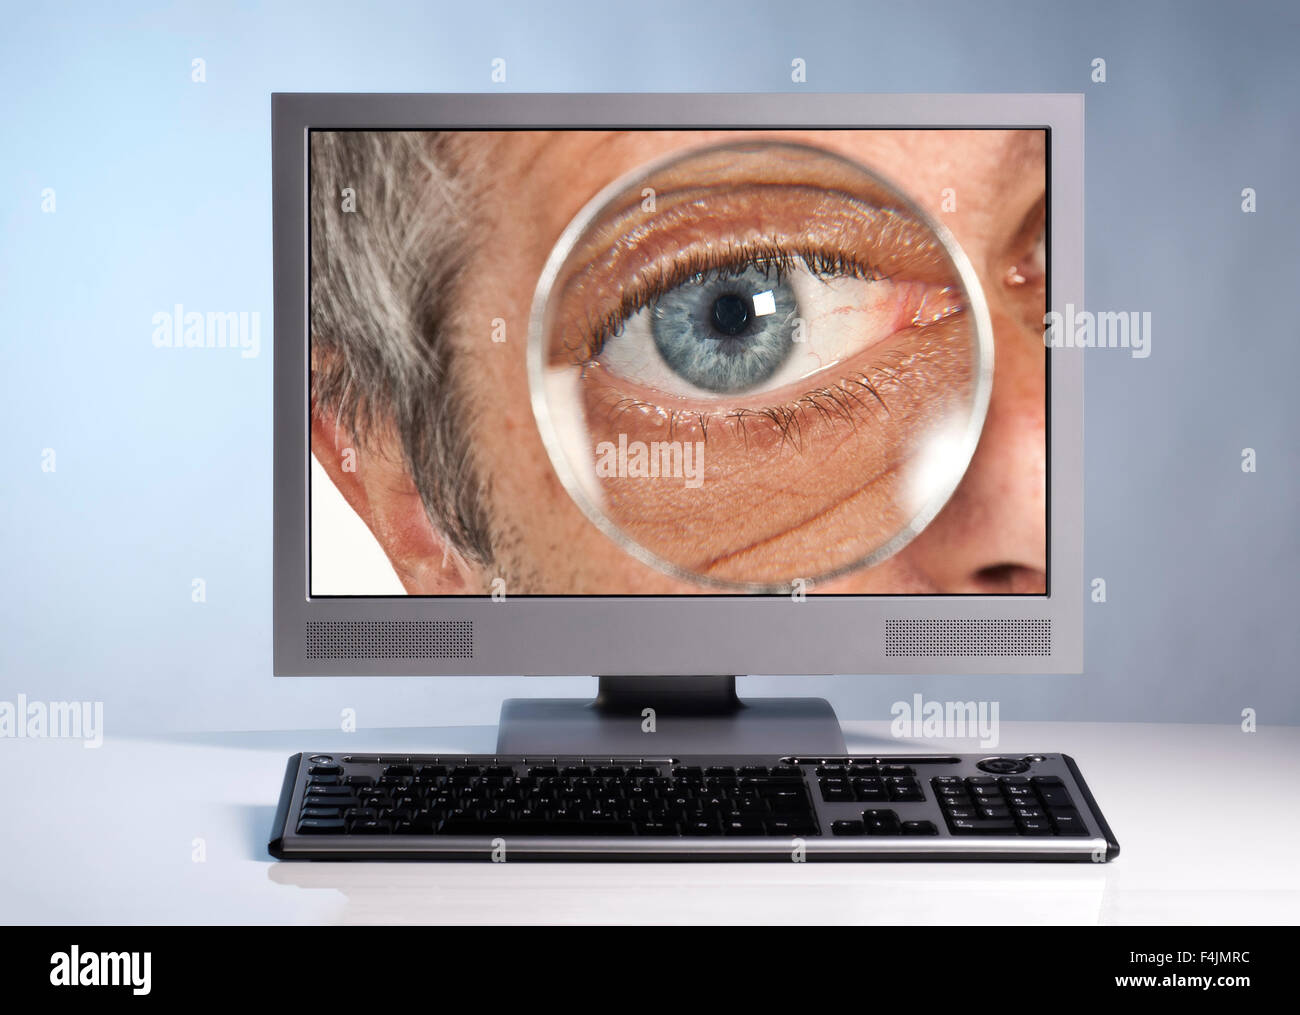 Monitor with eye and magnifier - Stock Image